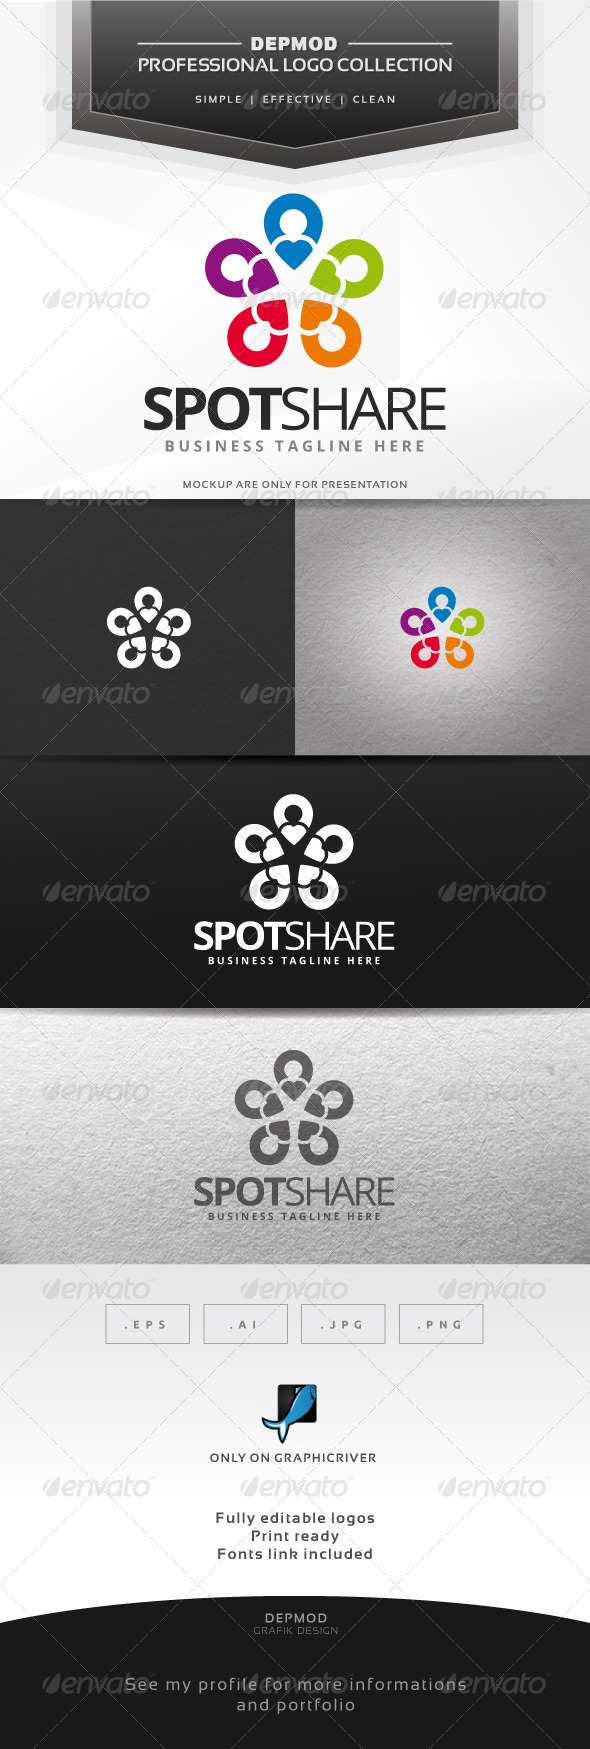 GraphicRiver Spot Share Logo 6610941